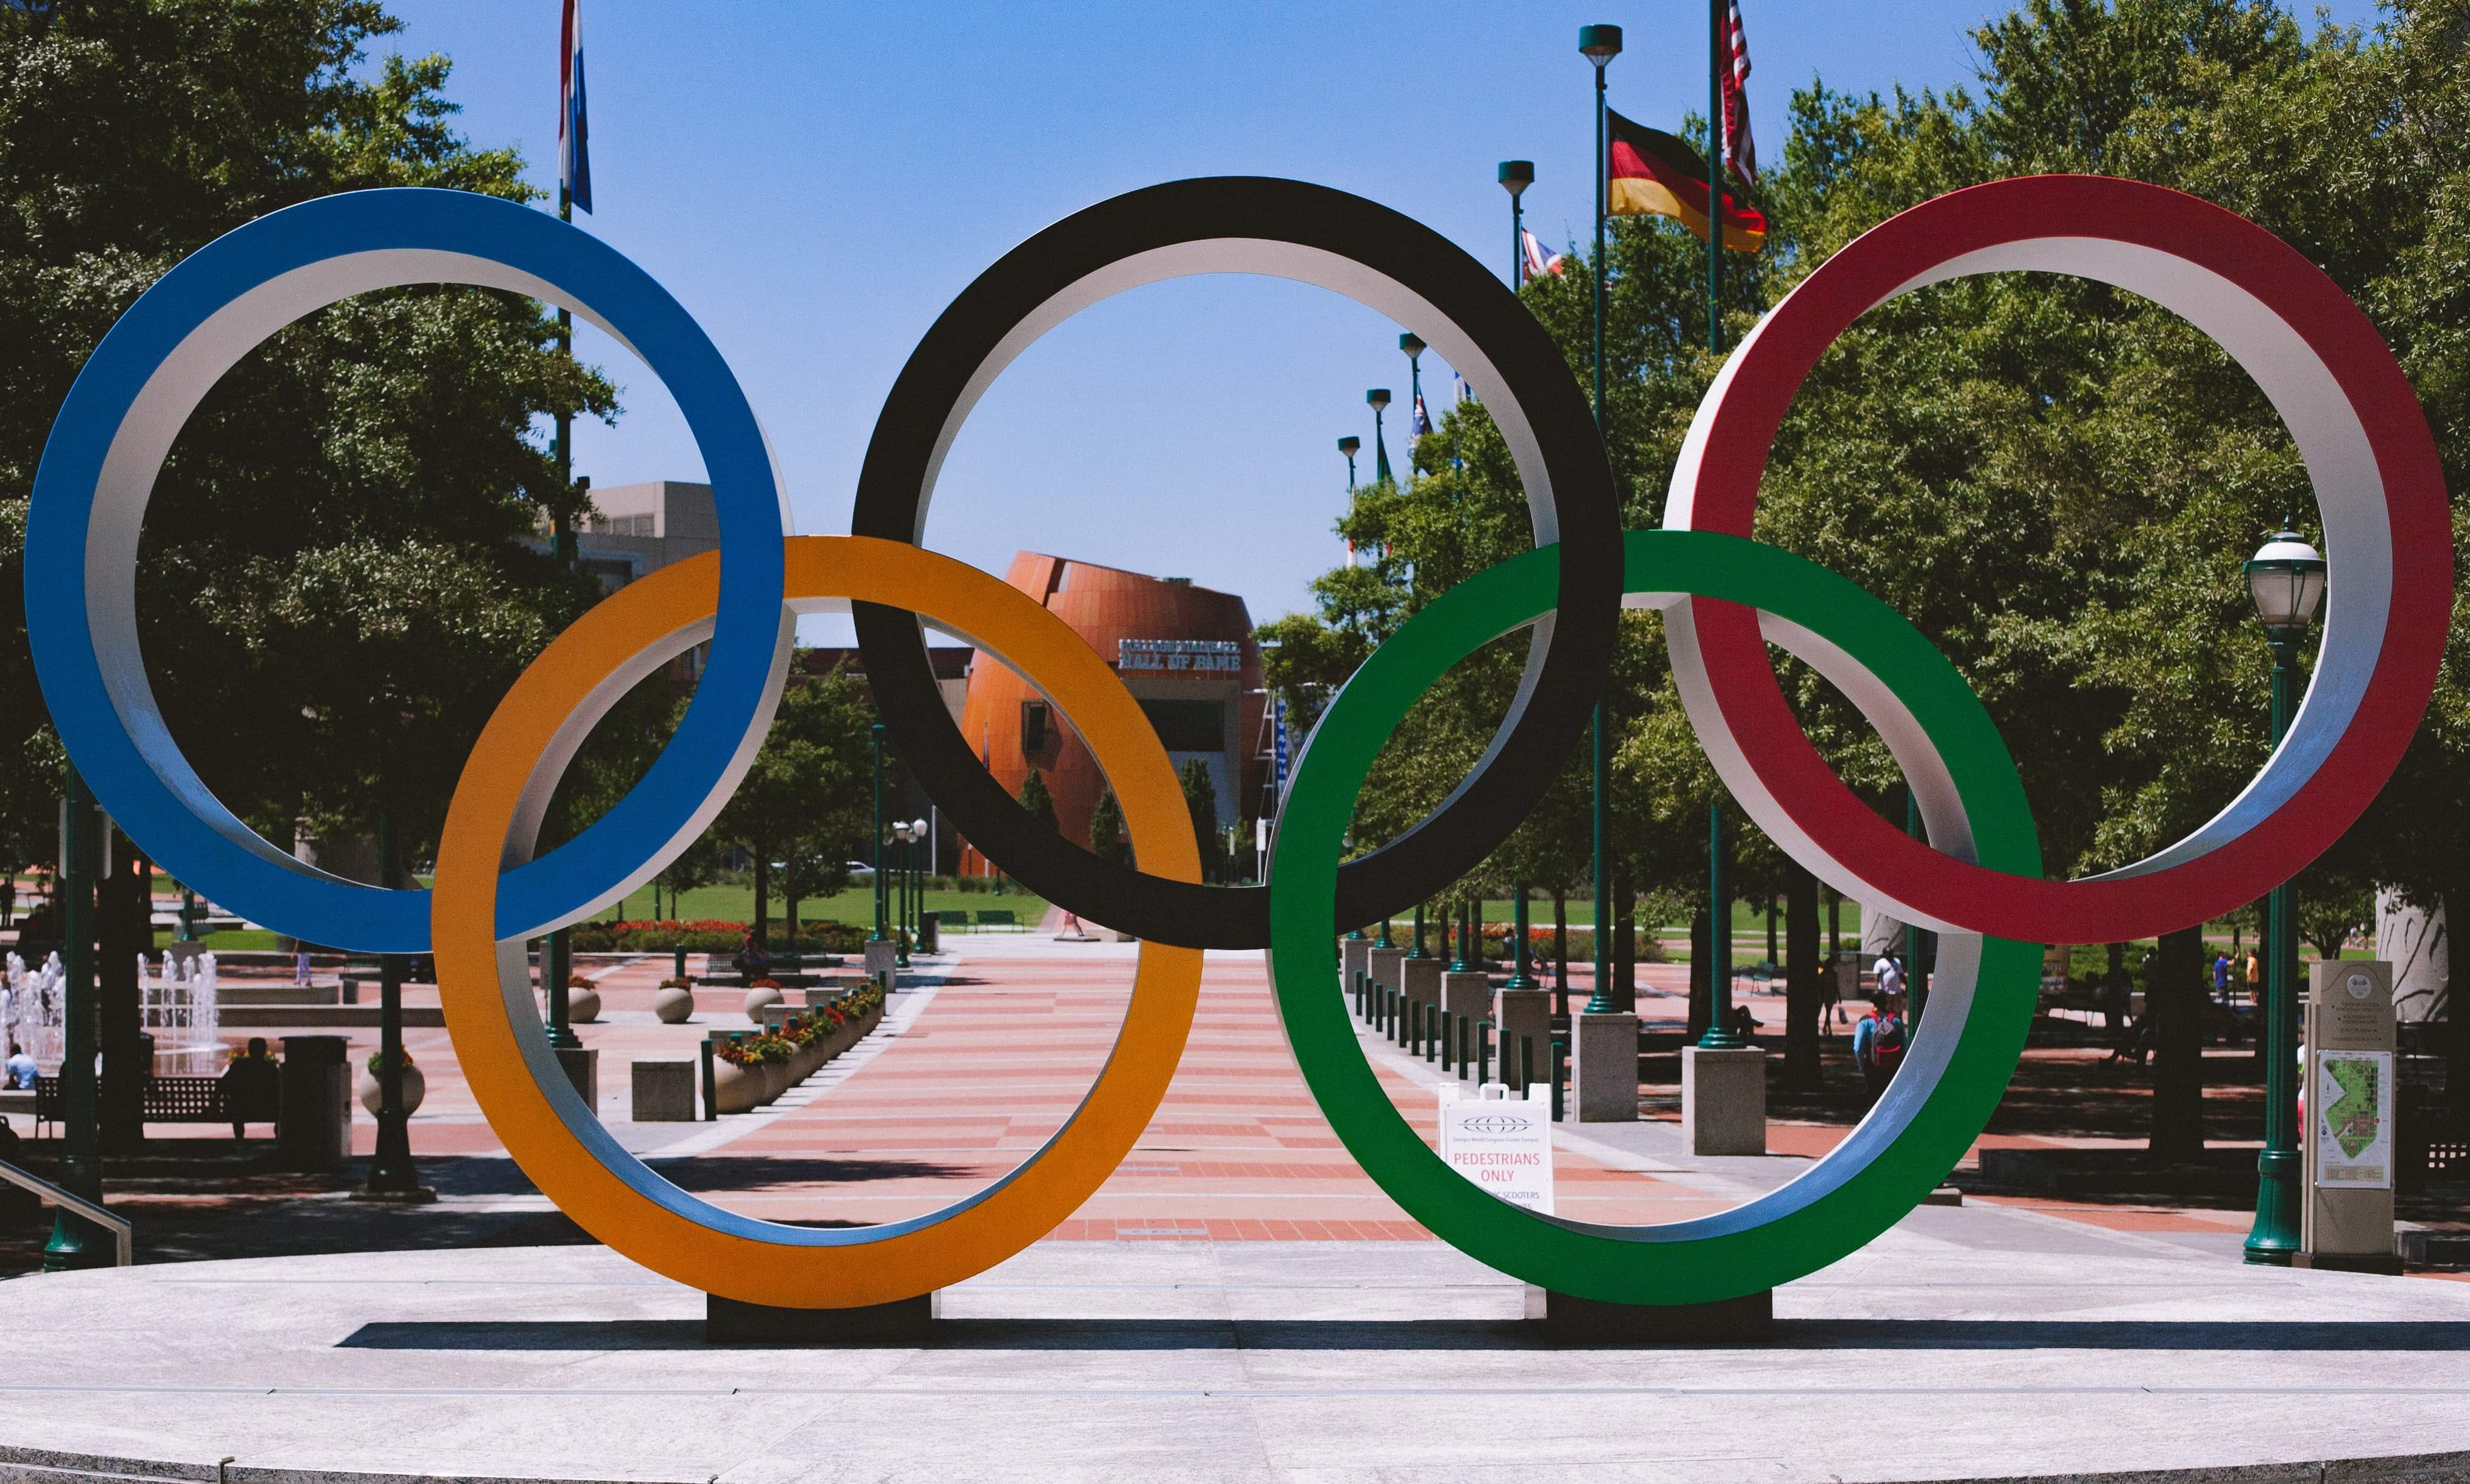 Tokyo Olympics 2020: Cancellation of games possible due to coronavirus outbreak